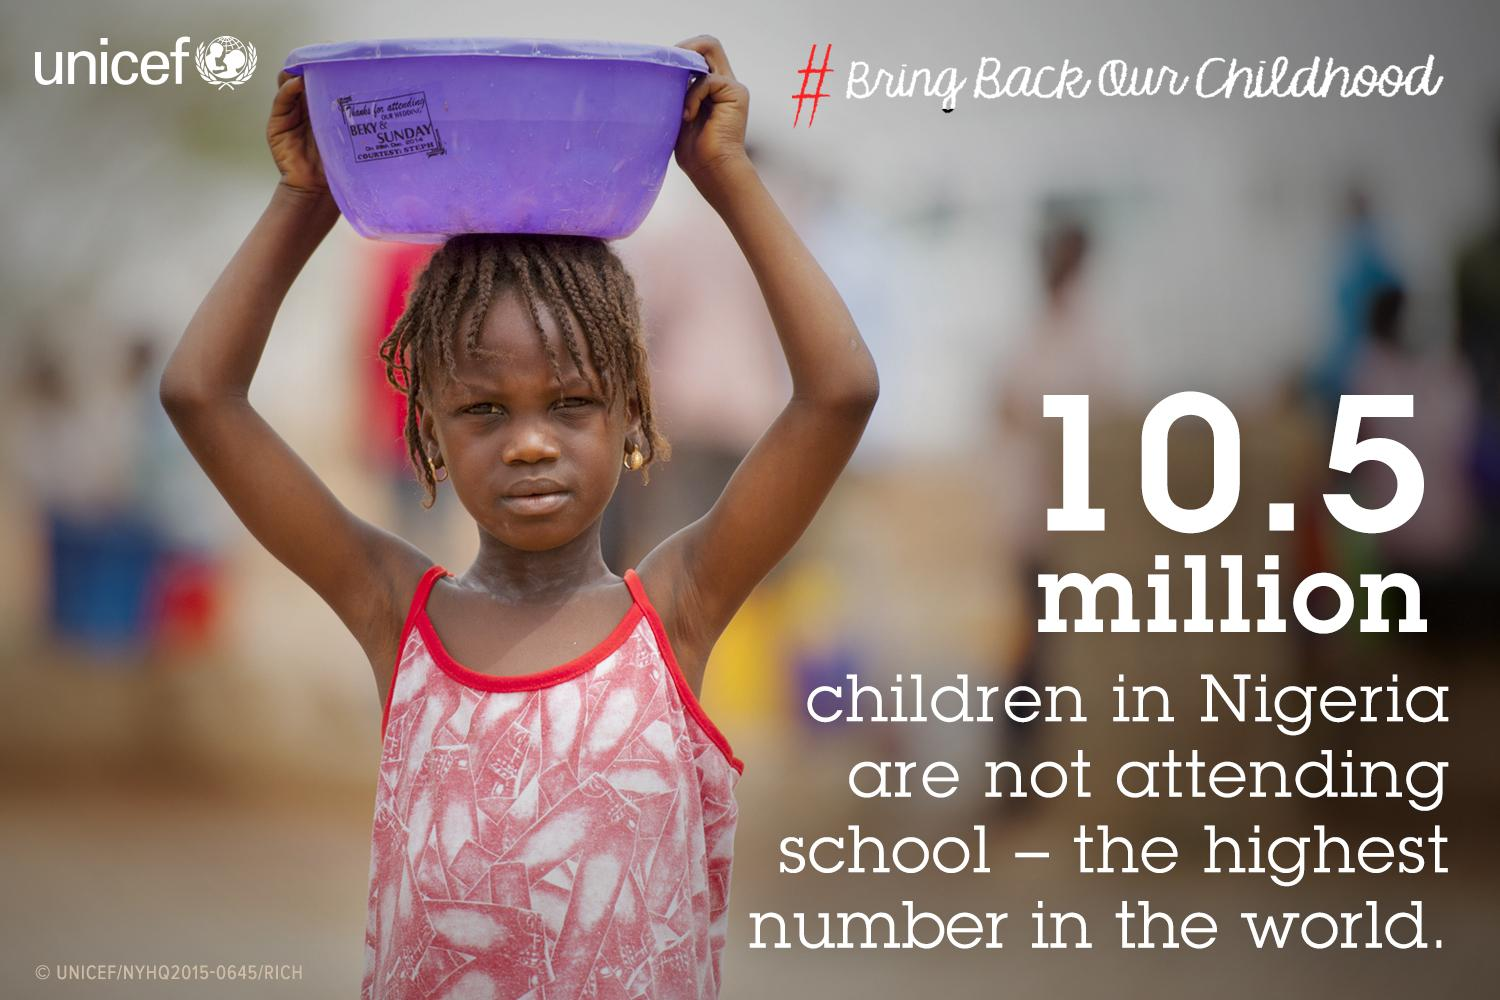 A shocking number - and nearly 60% of #outofschool children live in north of #Nigeria. #BringBackOurChildhood http://t.co/rqNhQGygcs